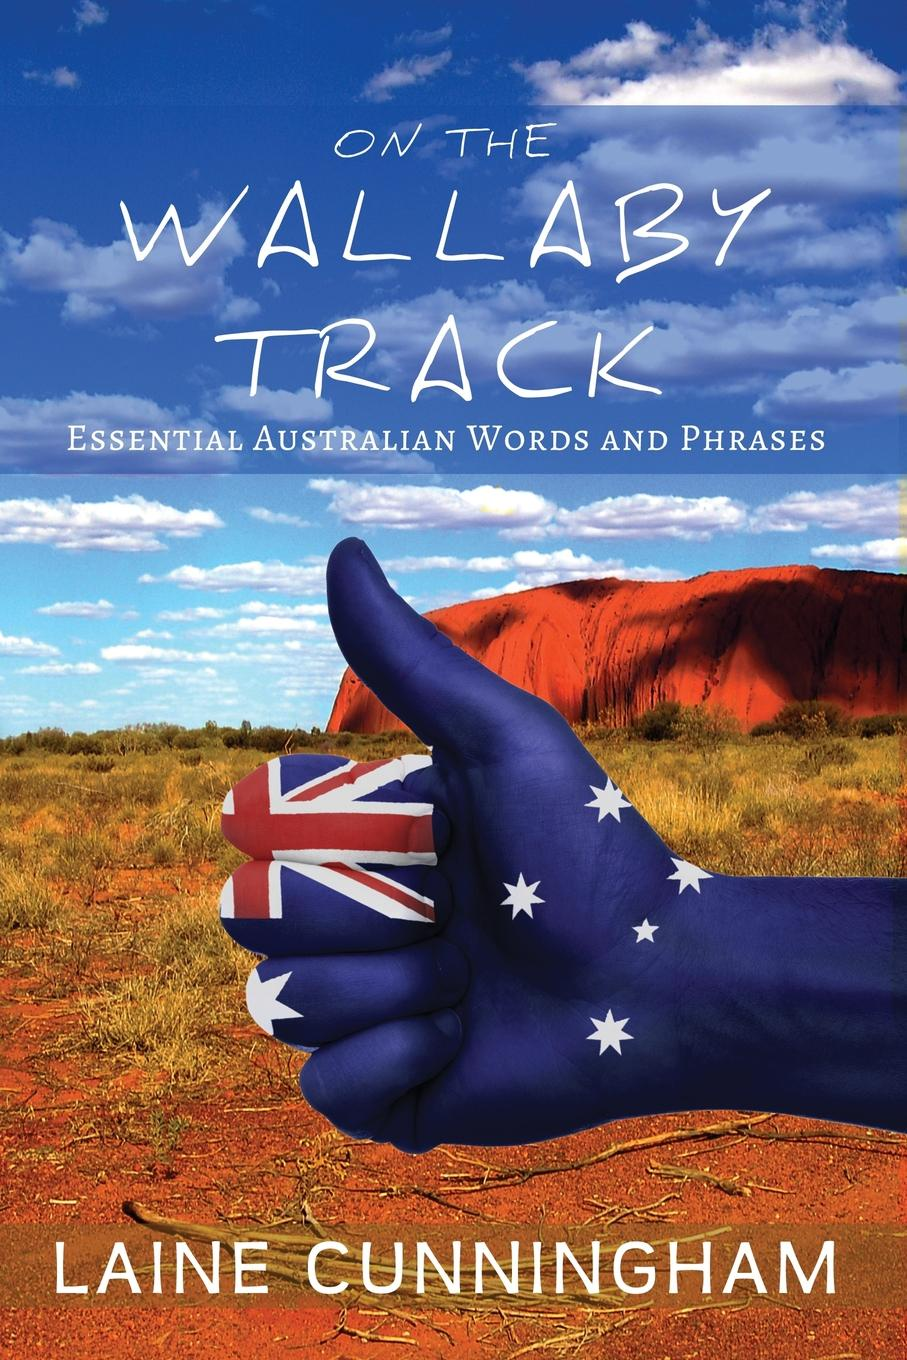 Laine Cunningham On the Wallaby Track. Essential Australian Words and Phrases